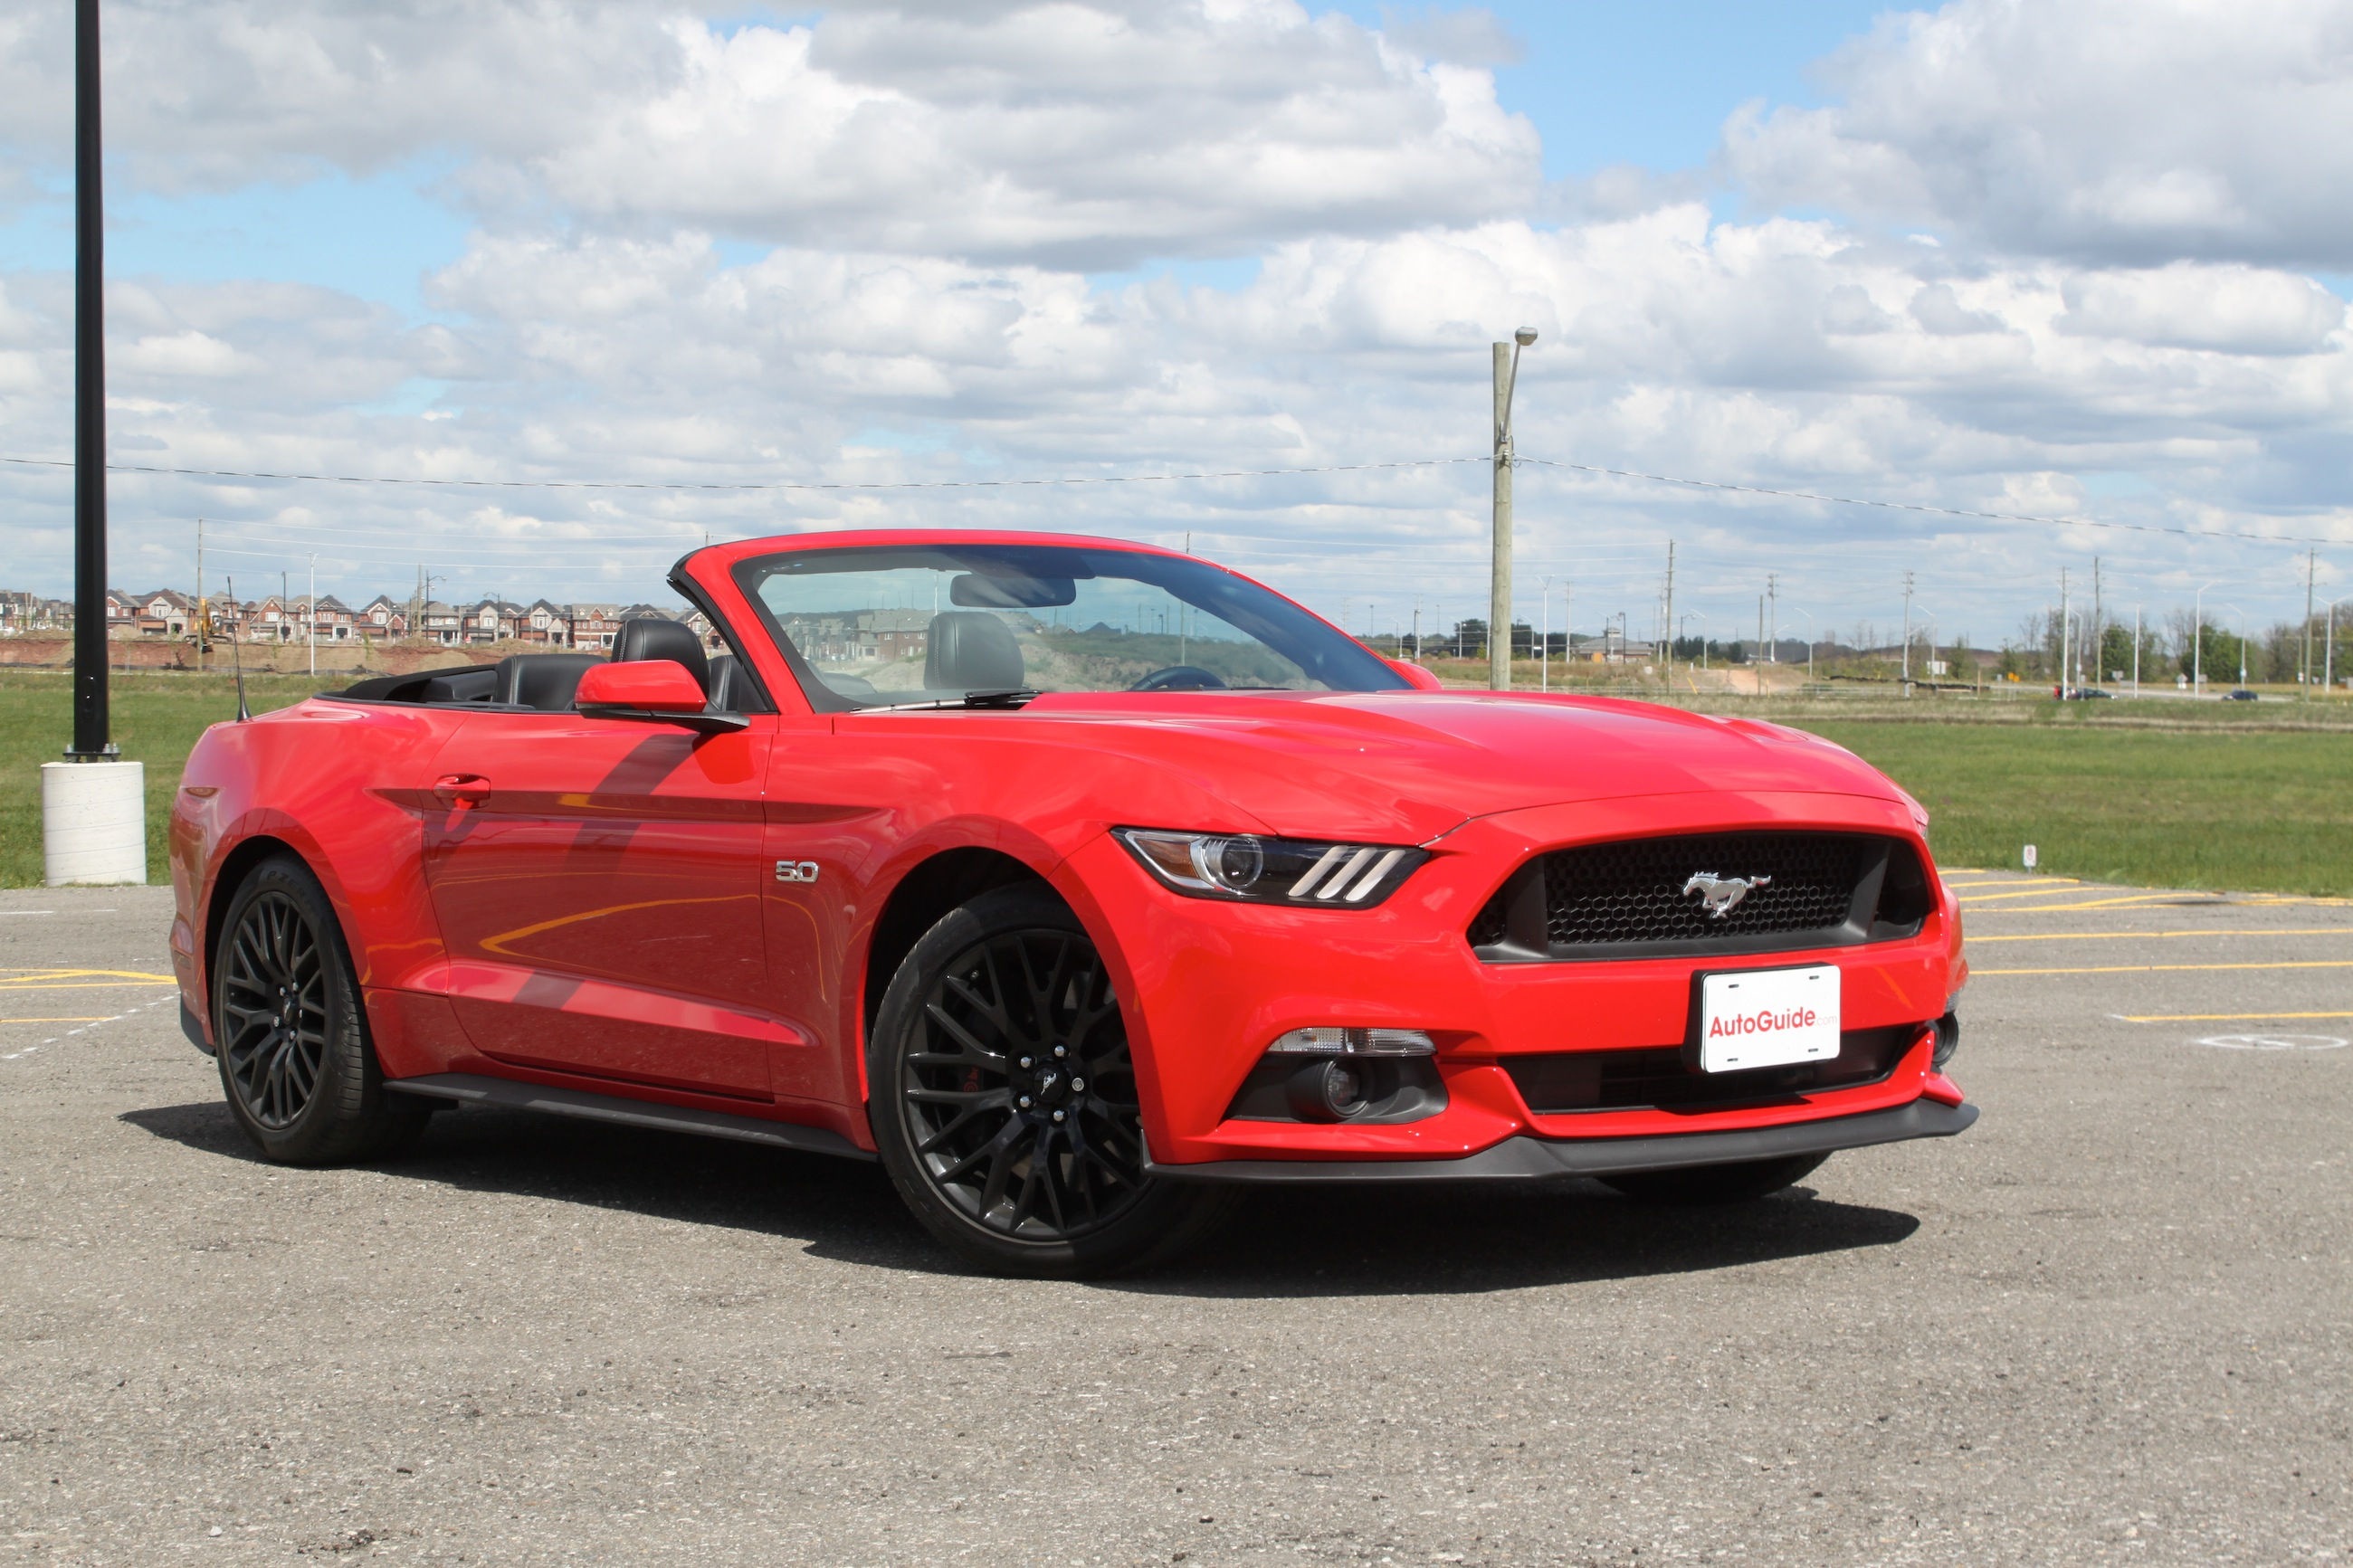 2017 Mustang Gt Convertible Review 9